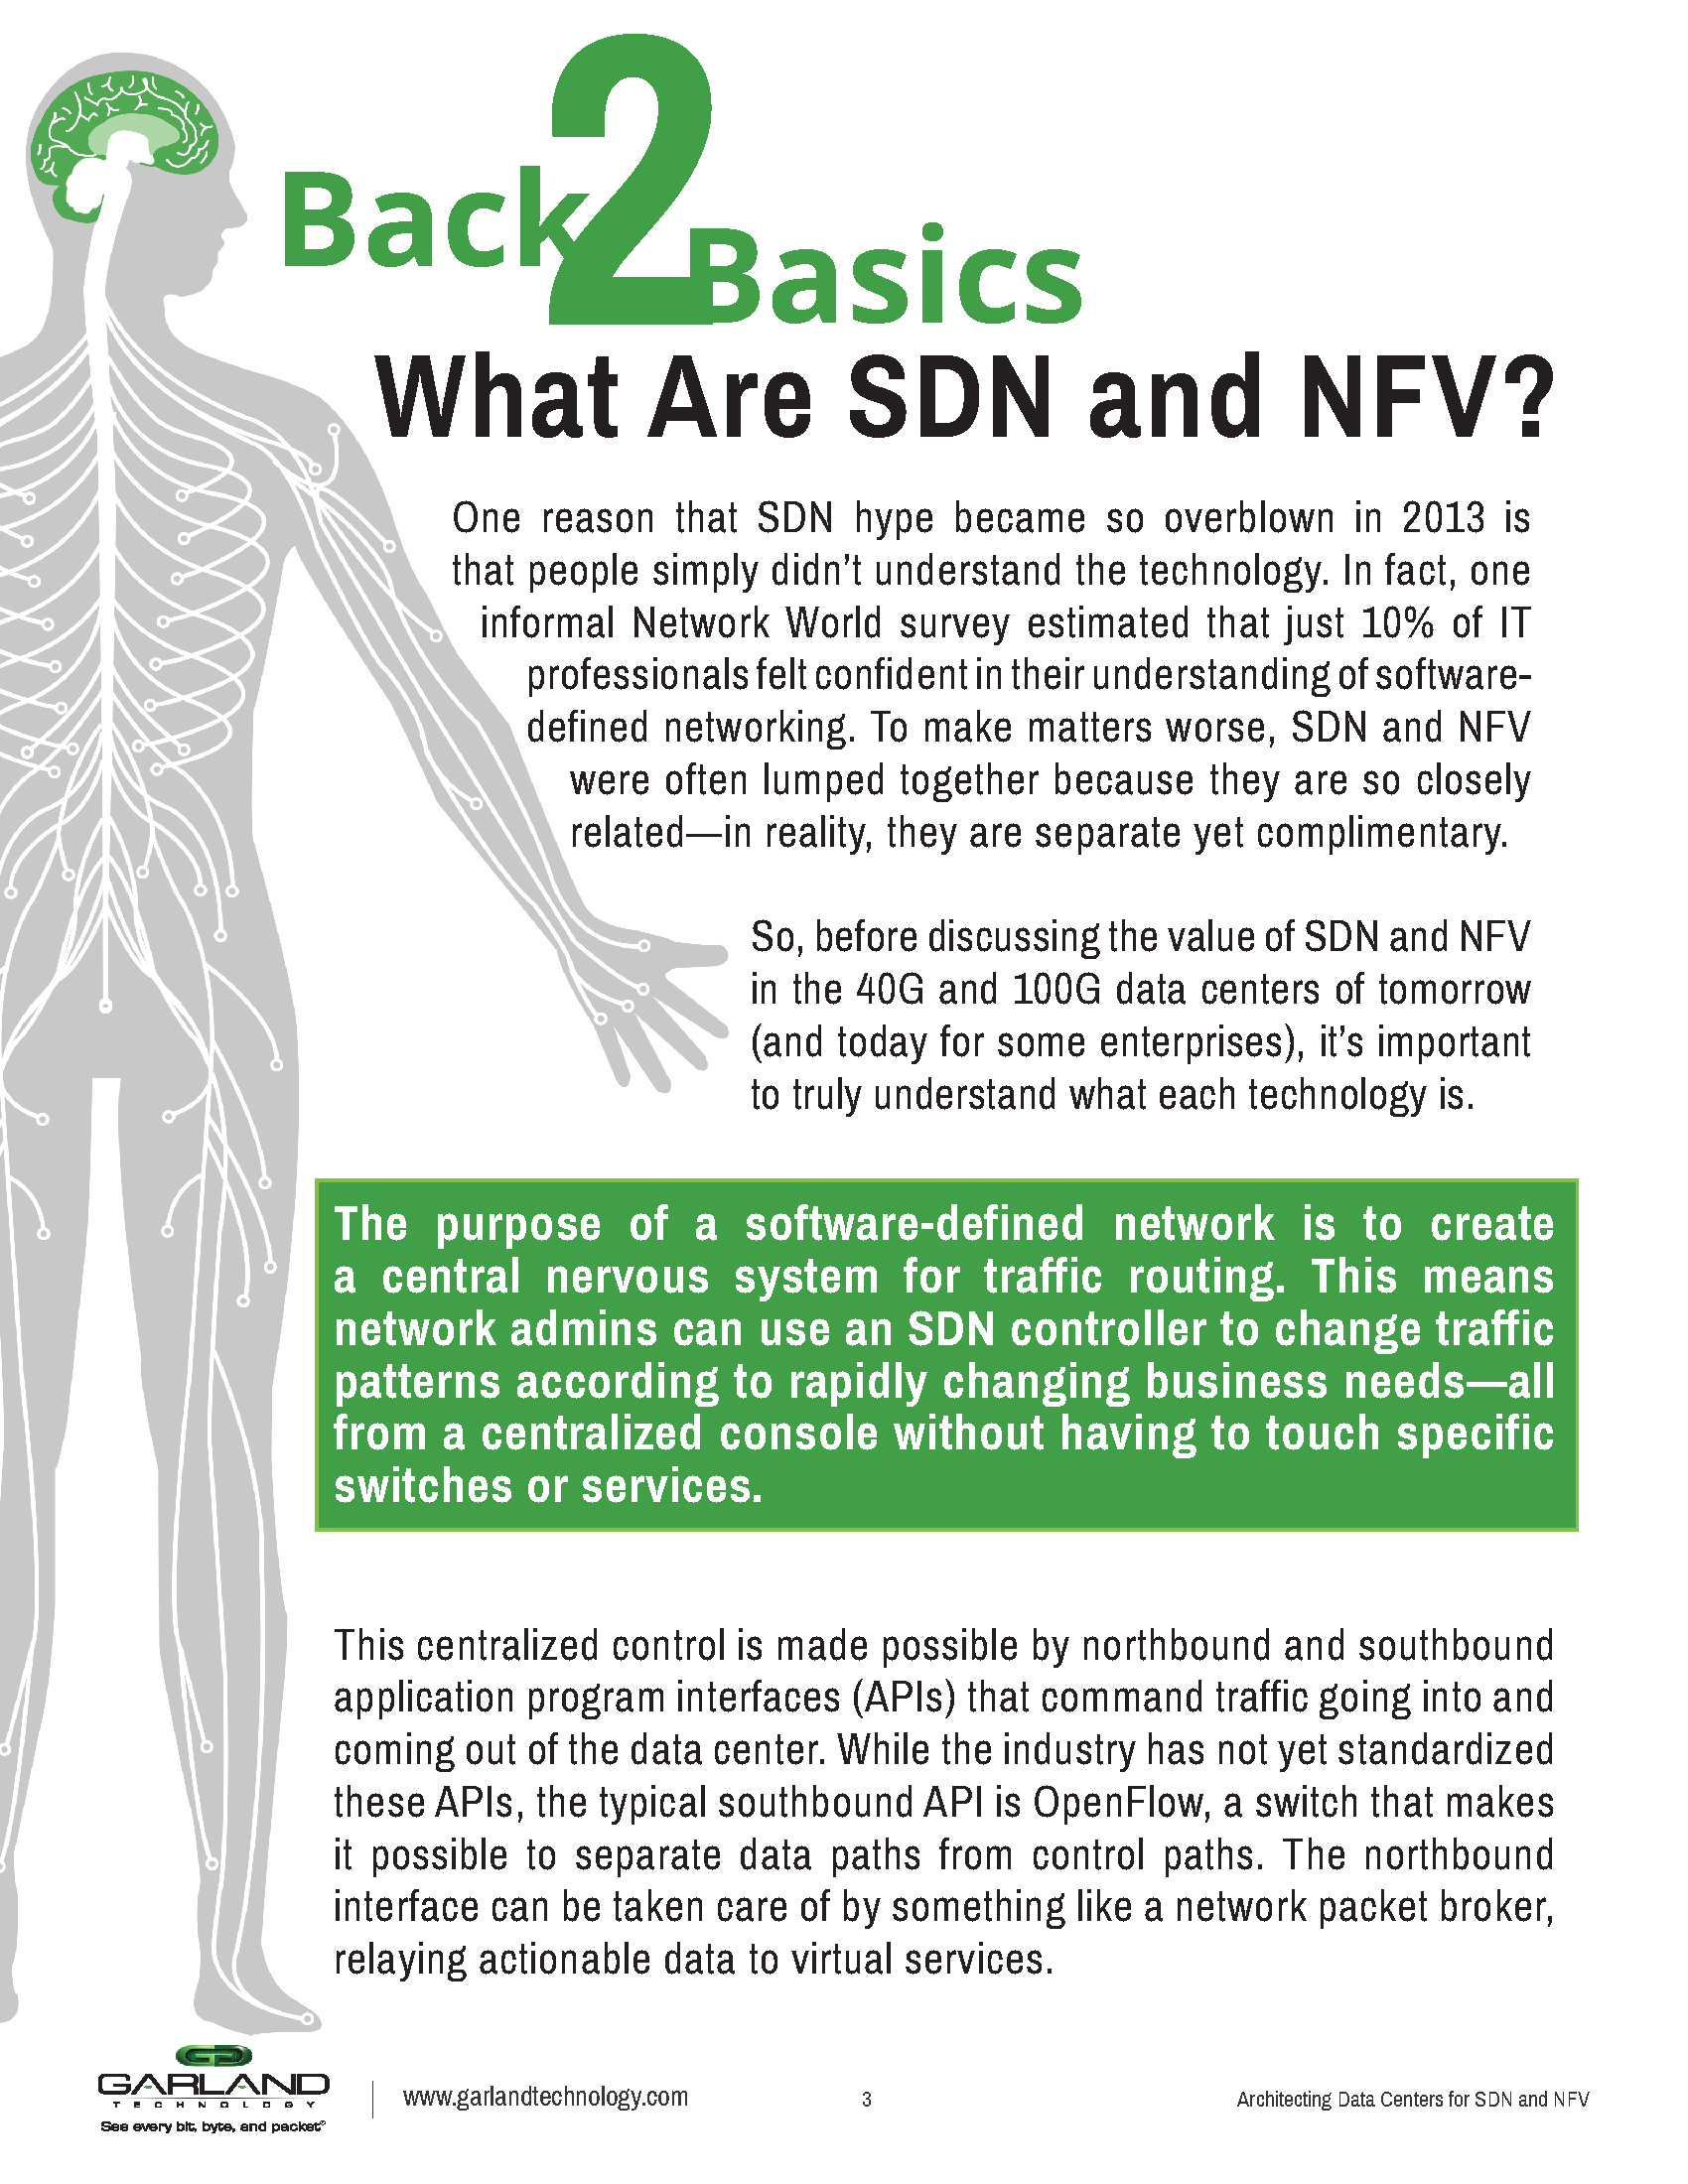 Architecting Data Centers for SDN & NFV